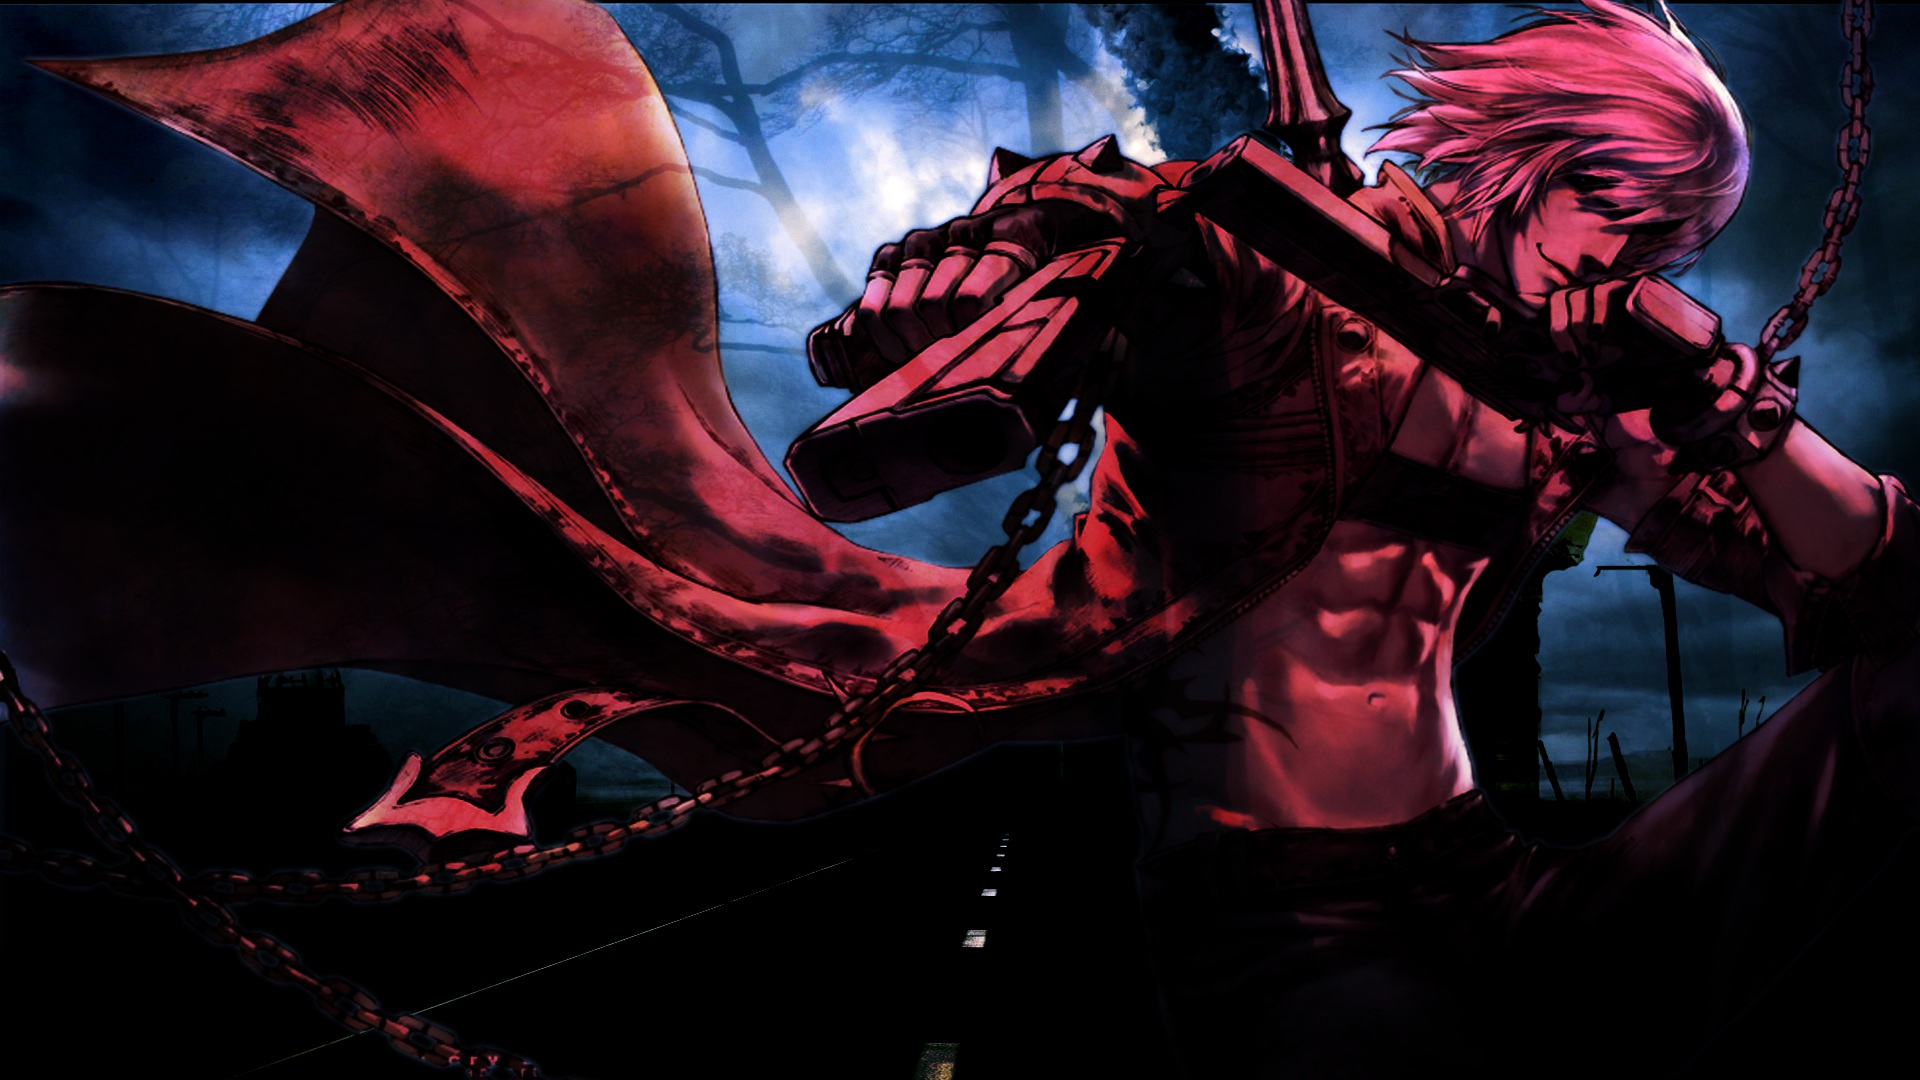 Devil May Cry Dante Wallpaper: Devil May Cry Weapons Guns Warrior Wallpaper